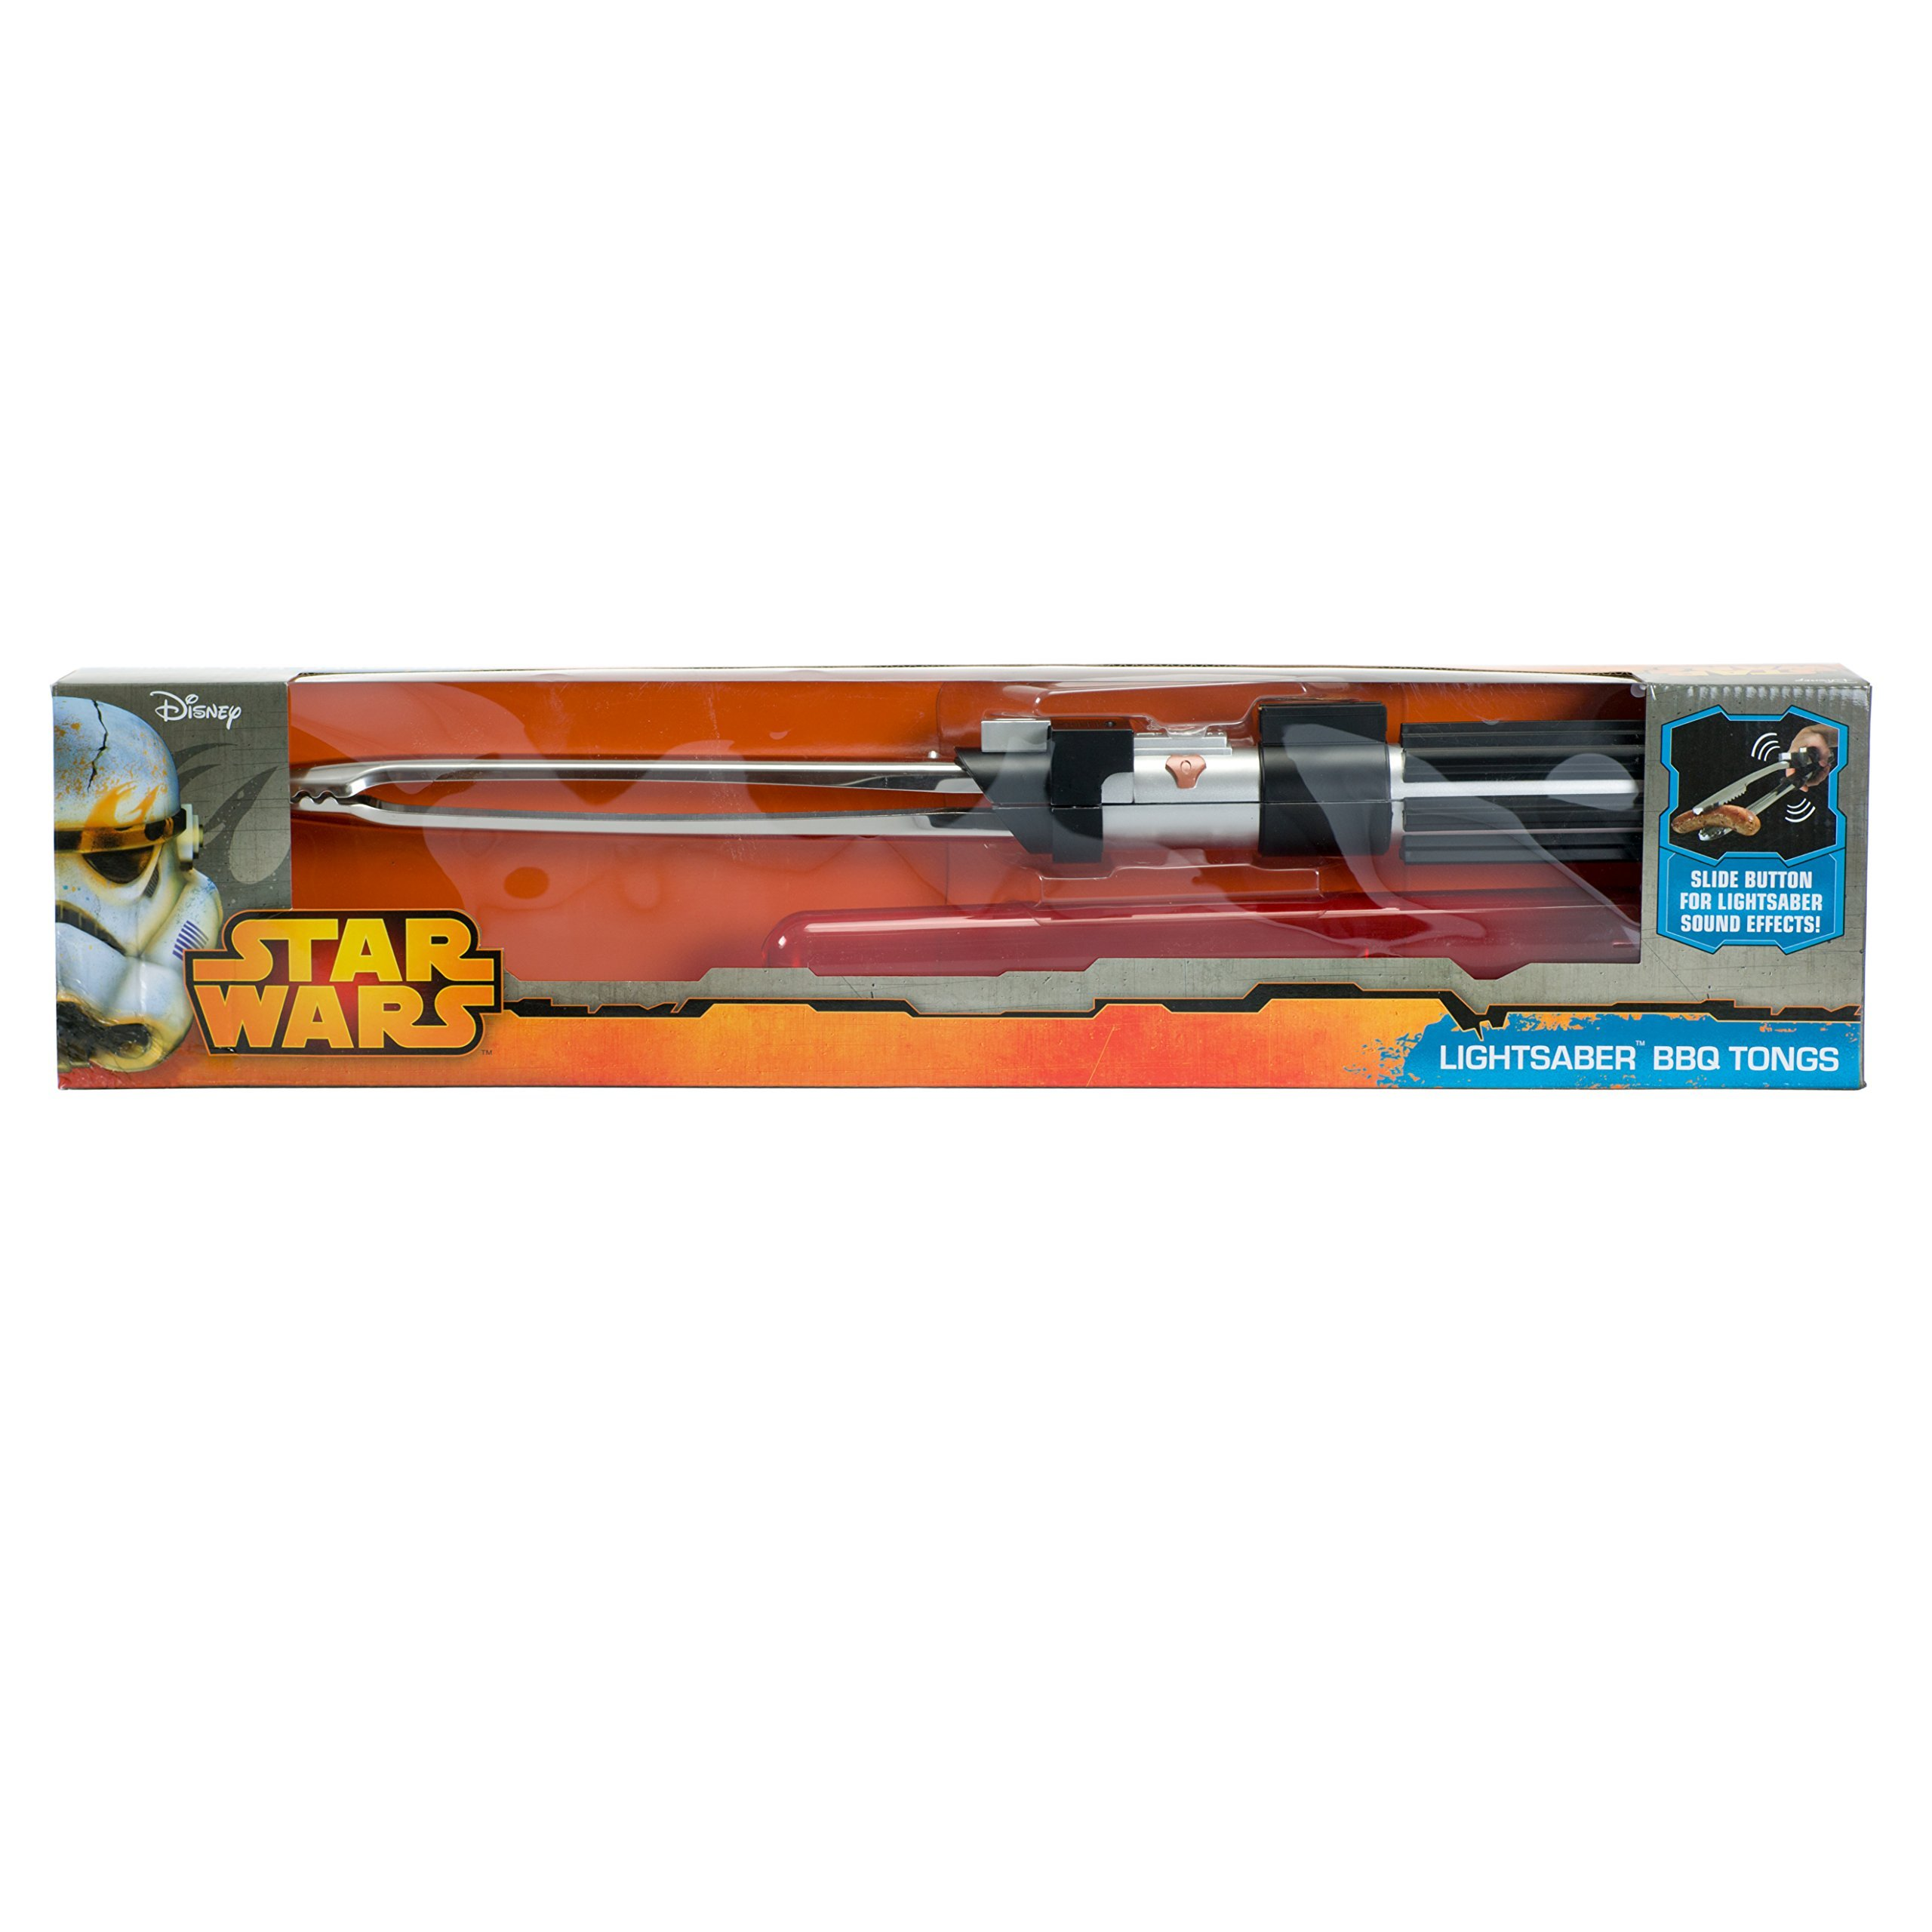 Star Wars Lightsaber BBQ Tongs with Sounds - Barbecue Like a Jedi (22'' Long) by Underground Toys (Image #6)